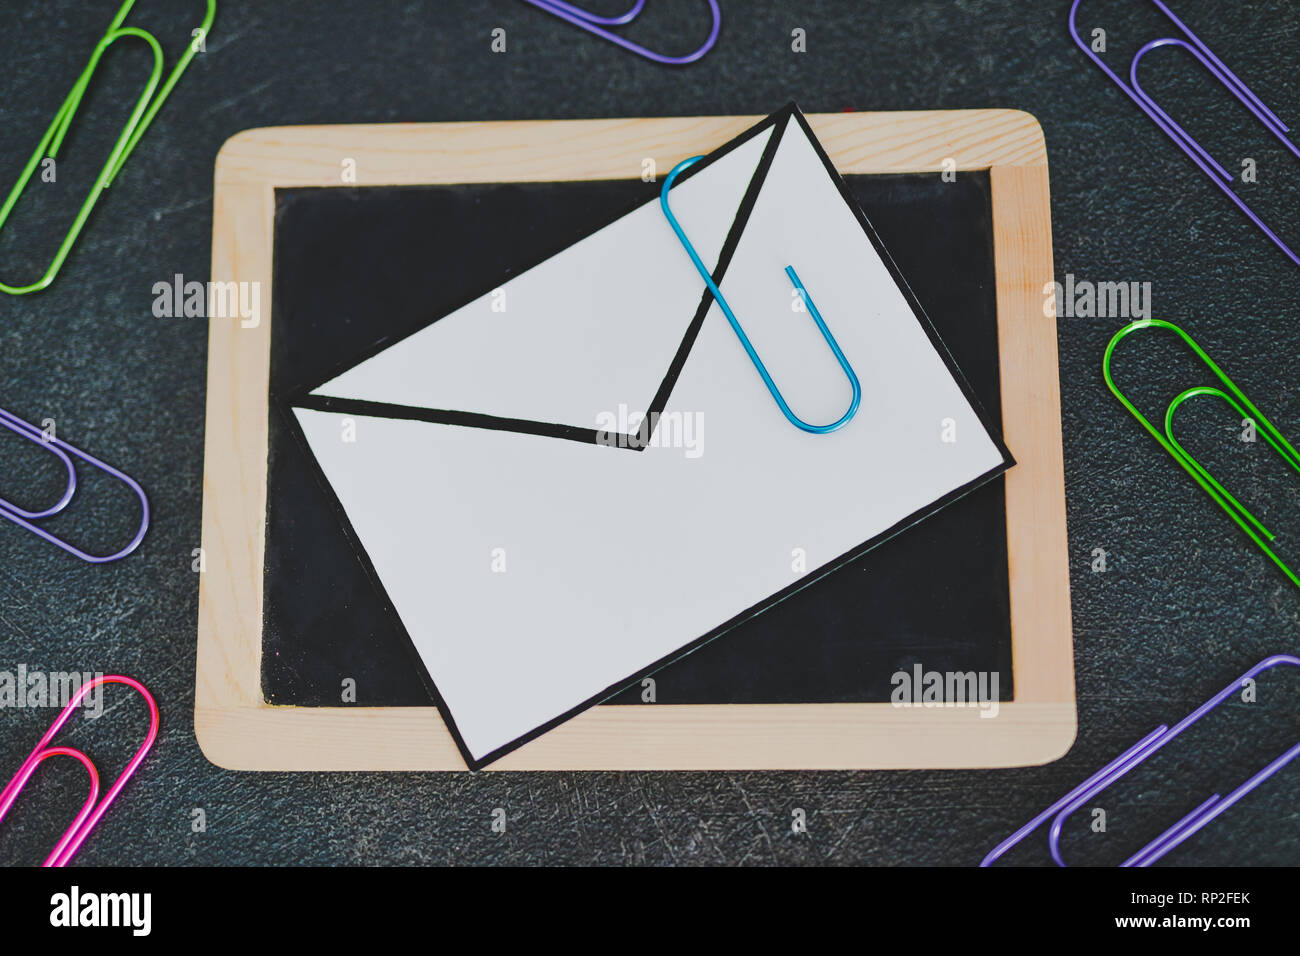 email envelope on blackboard with paper clip symbol of attachment, metaphor of internet communication - Stock Image